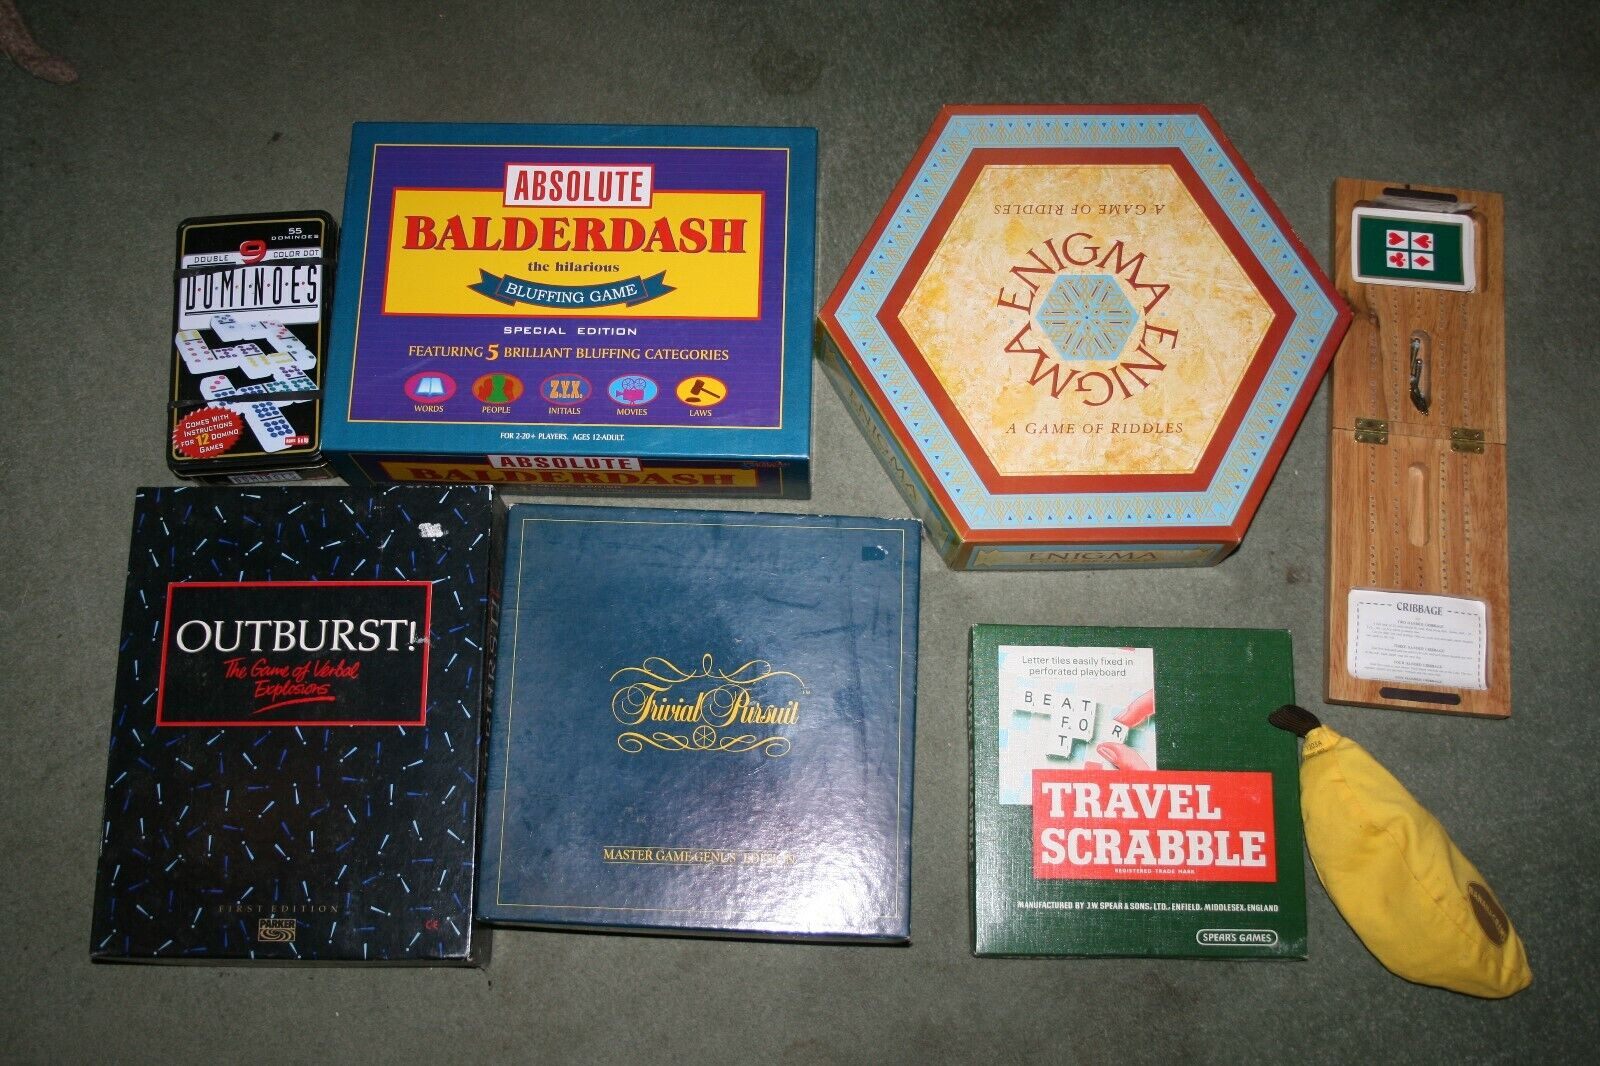 Job lot of family games - reseller car boot scrabble trivial pursuit dominoes